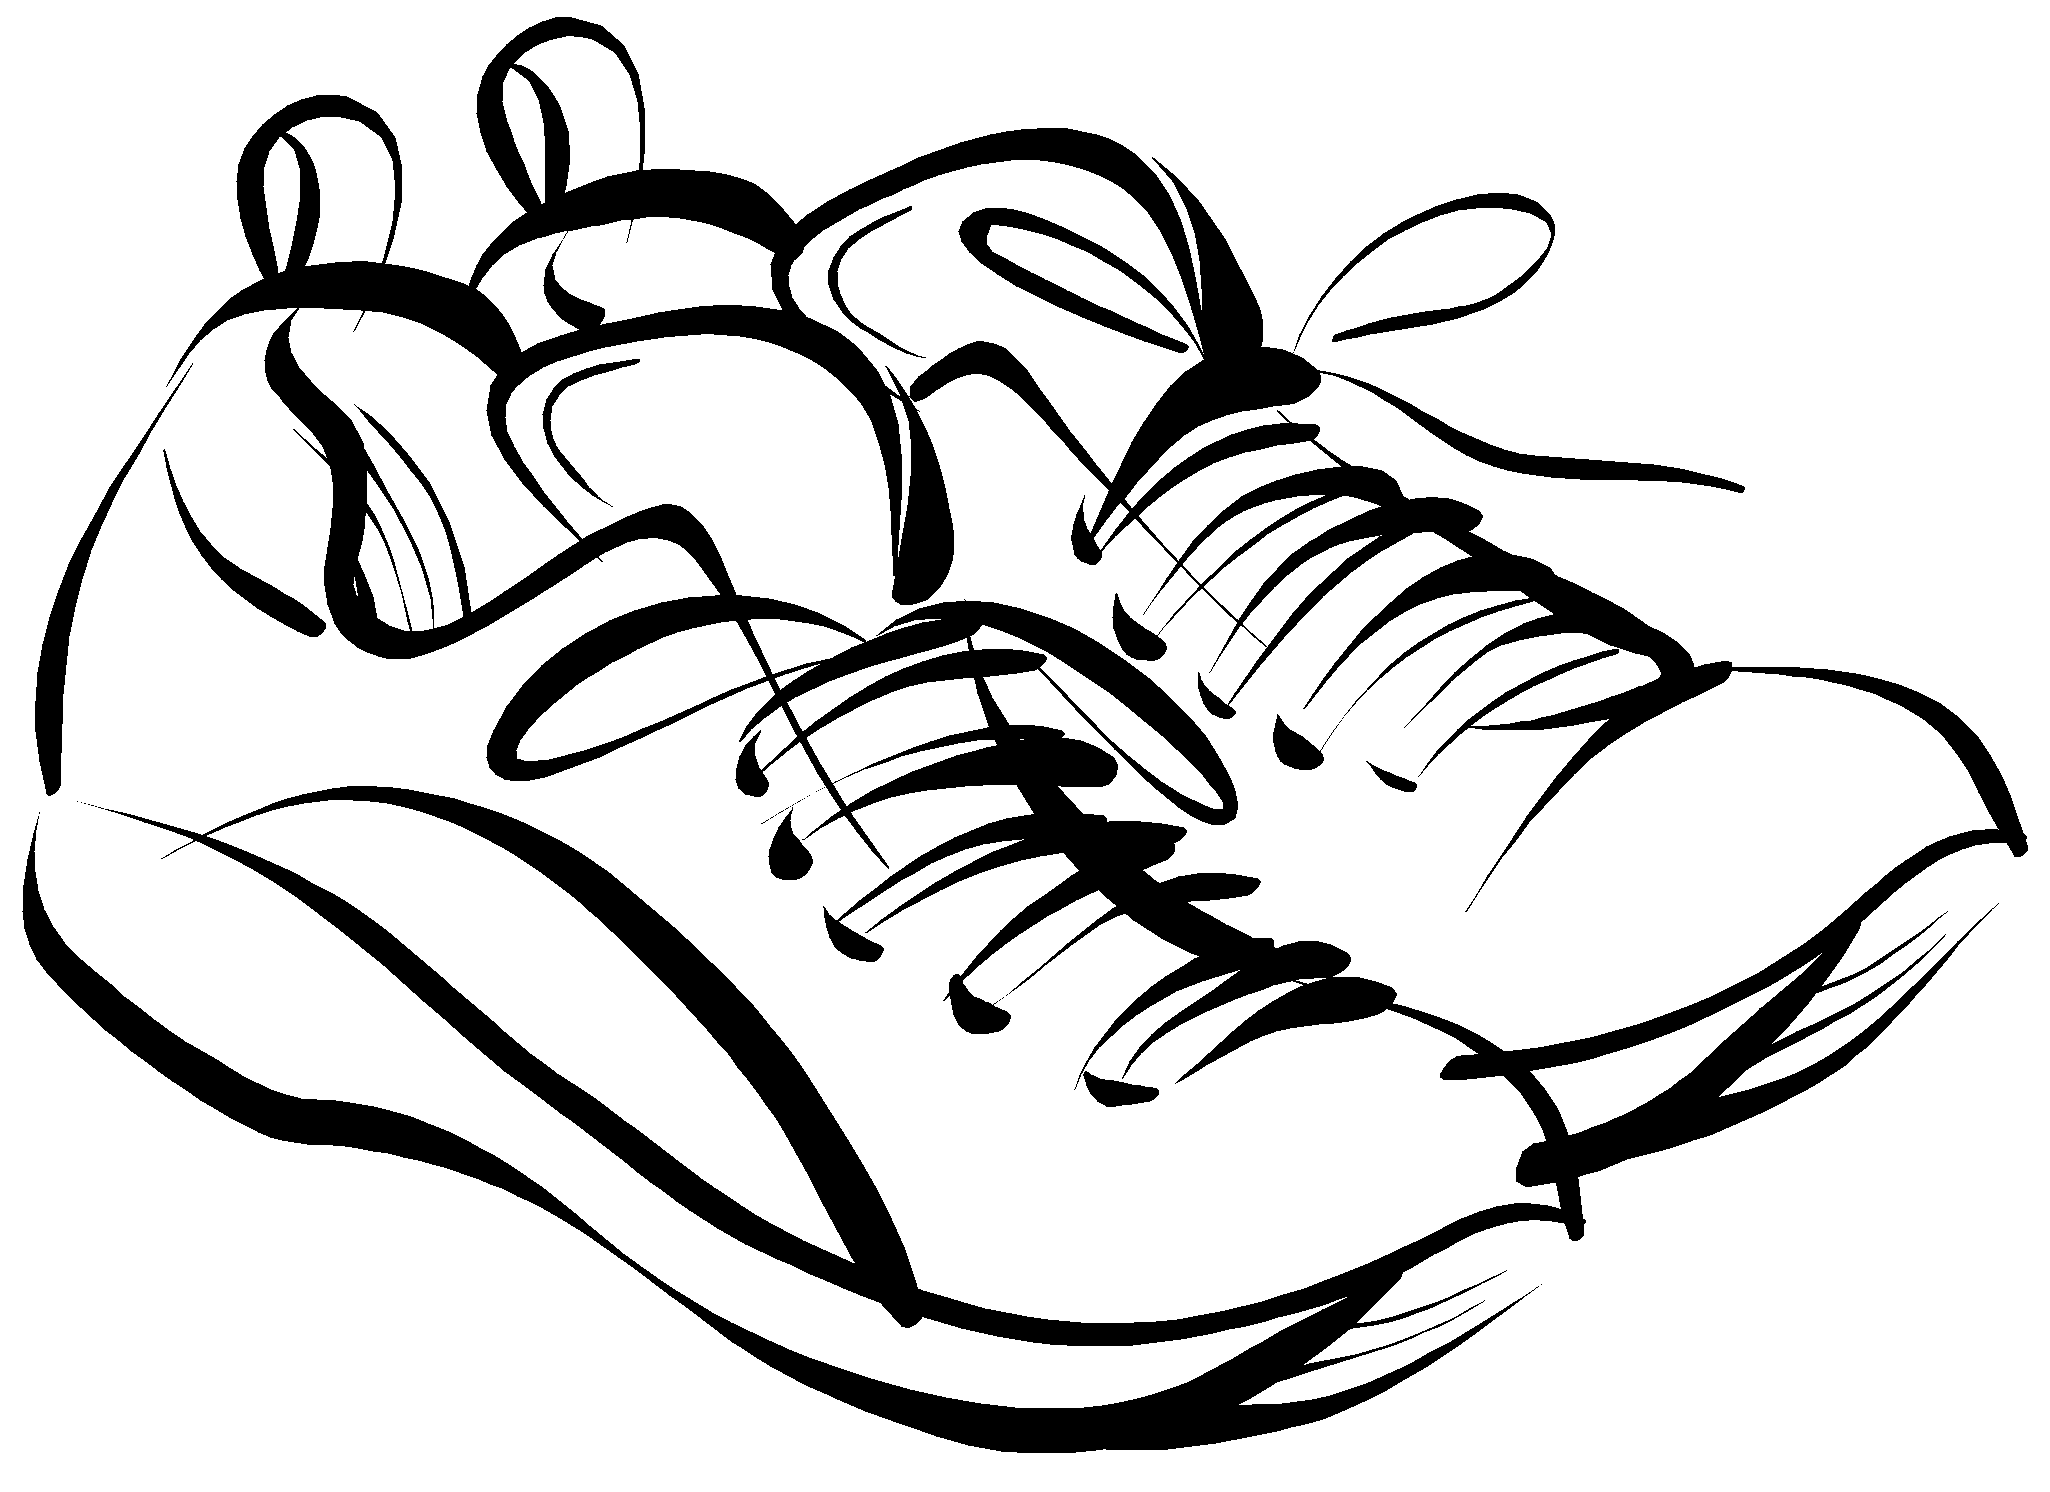 Track shoe clipart free 2 clipartcow